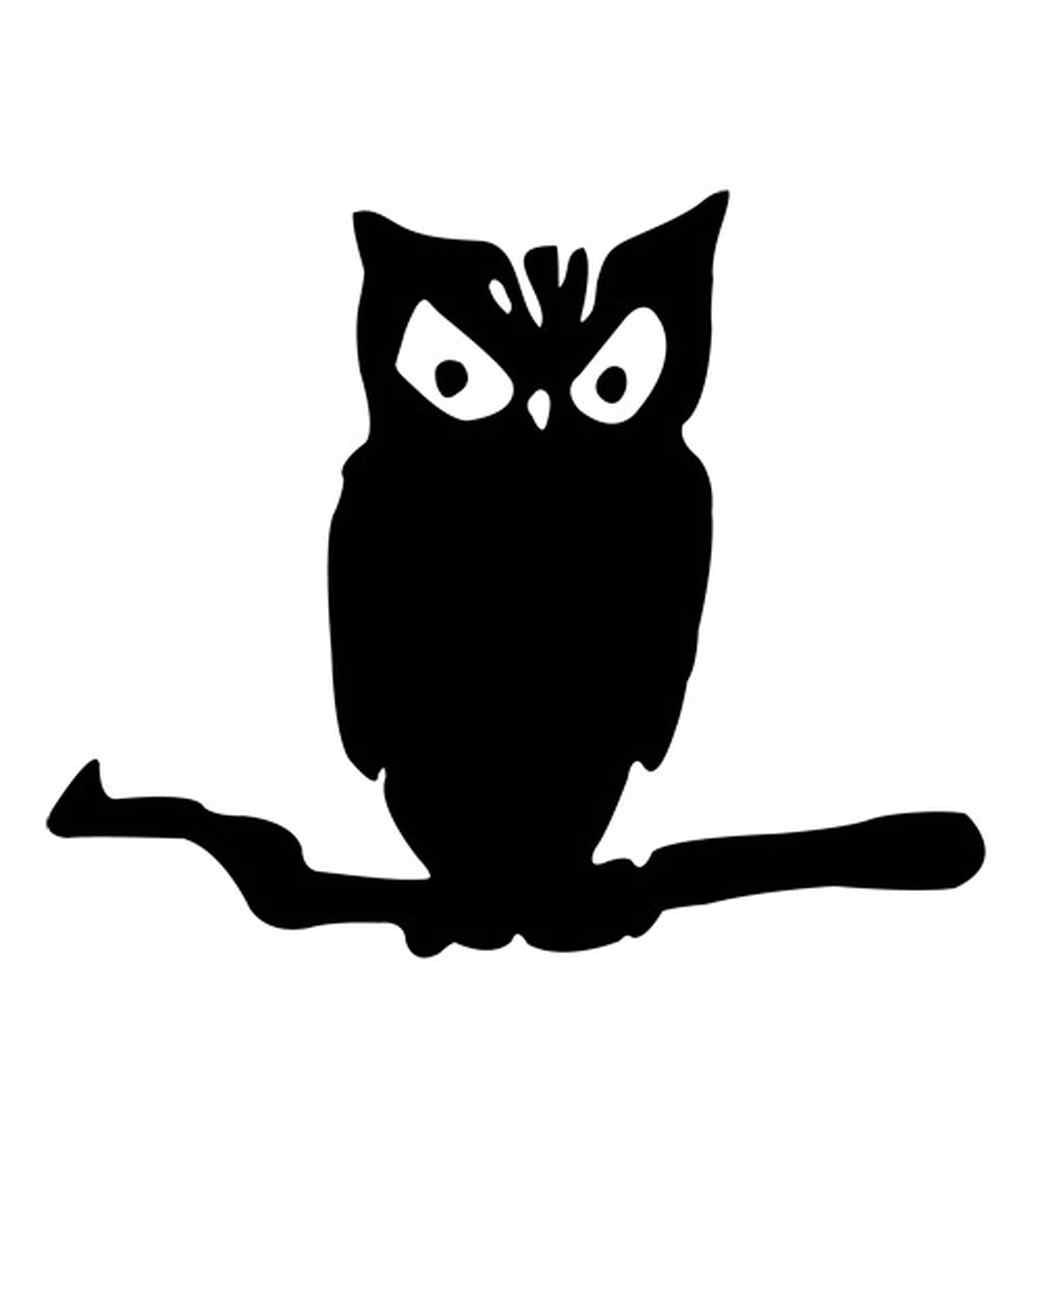 Owl clip art creepy. Halloween pumpkin carving patterns